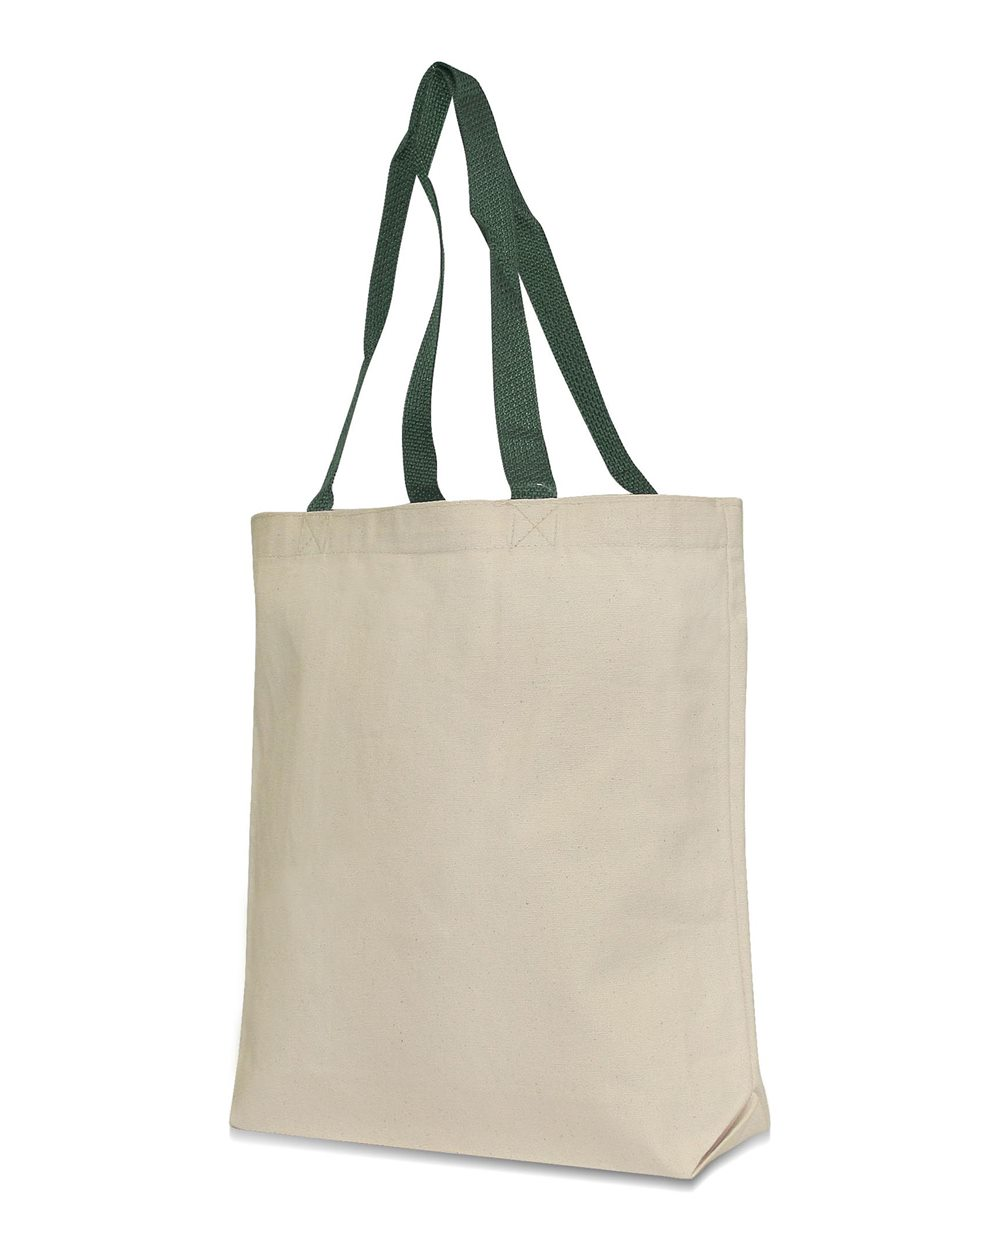 Liberty Bags 9868 - Jennifer Recycled Cotton Canvas Tote